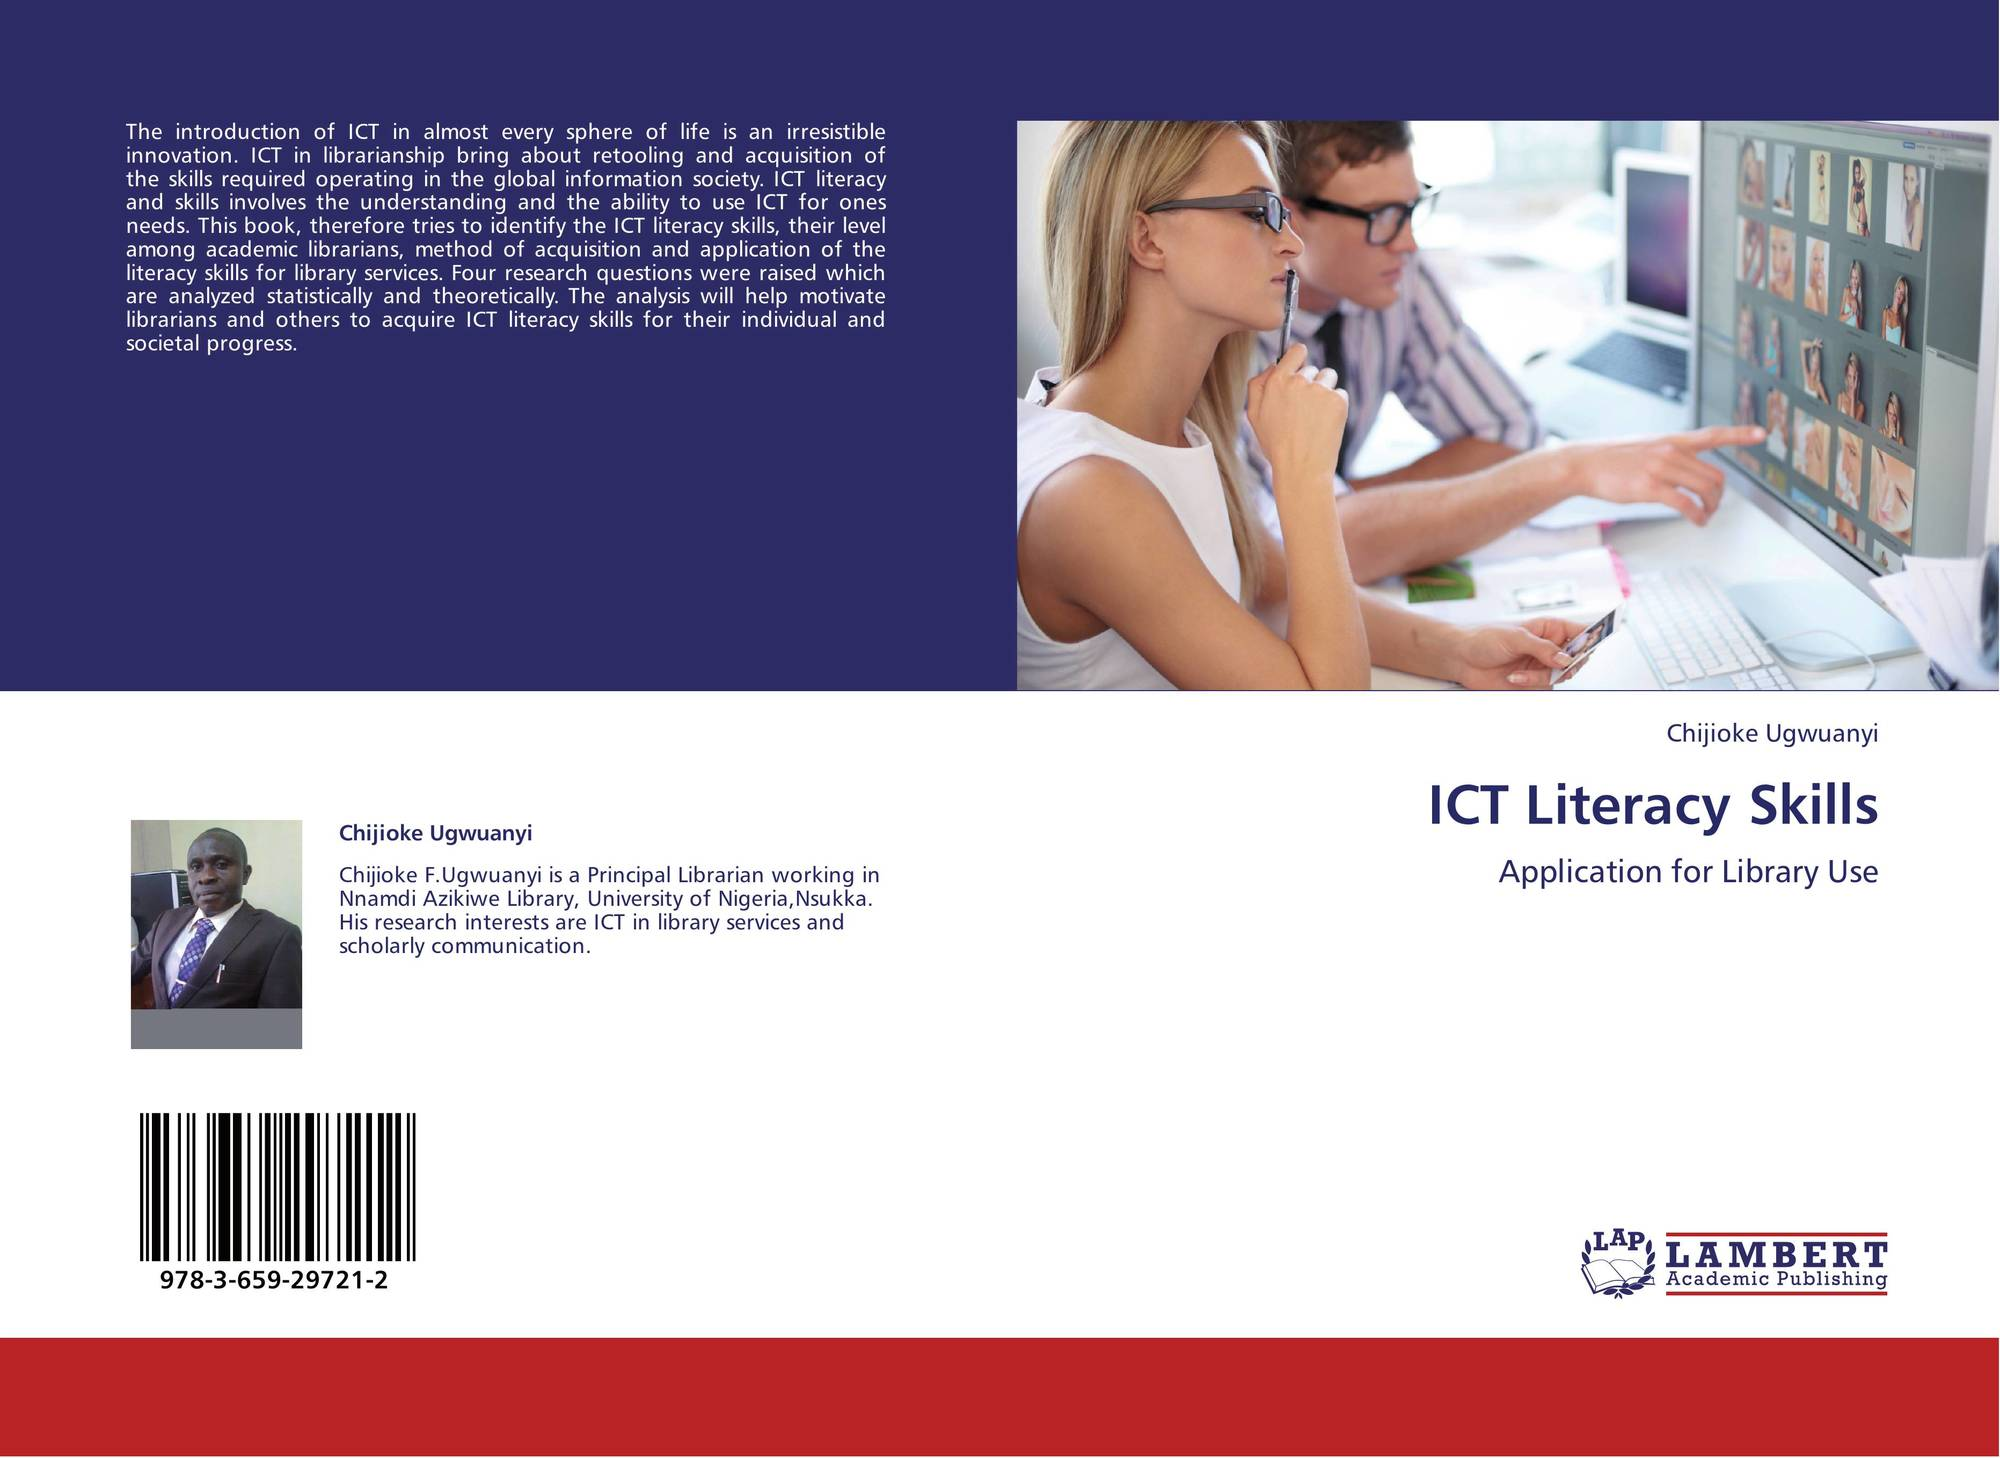 an introduction to the analysis of ict